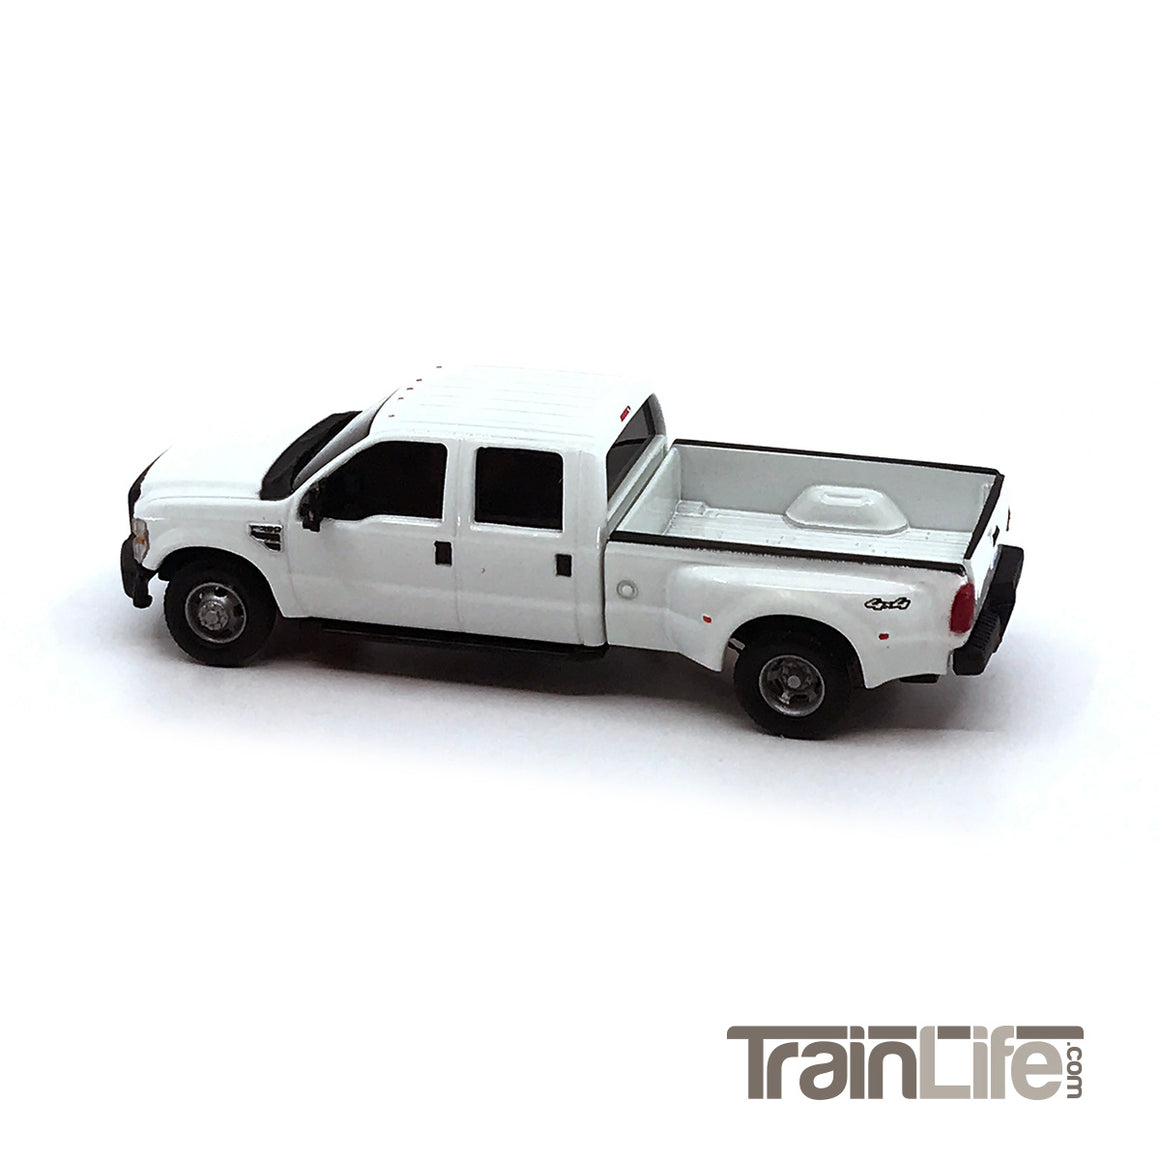 HO Scale: Lighted Ford F350 Crew Cab Dually Truck - White